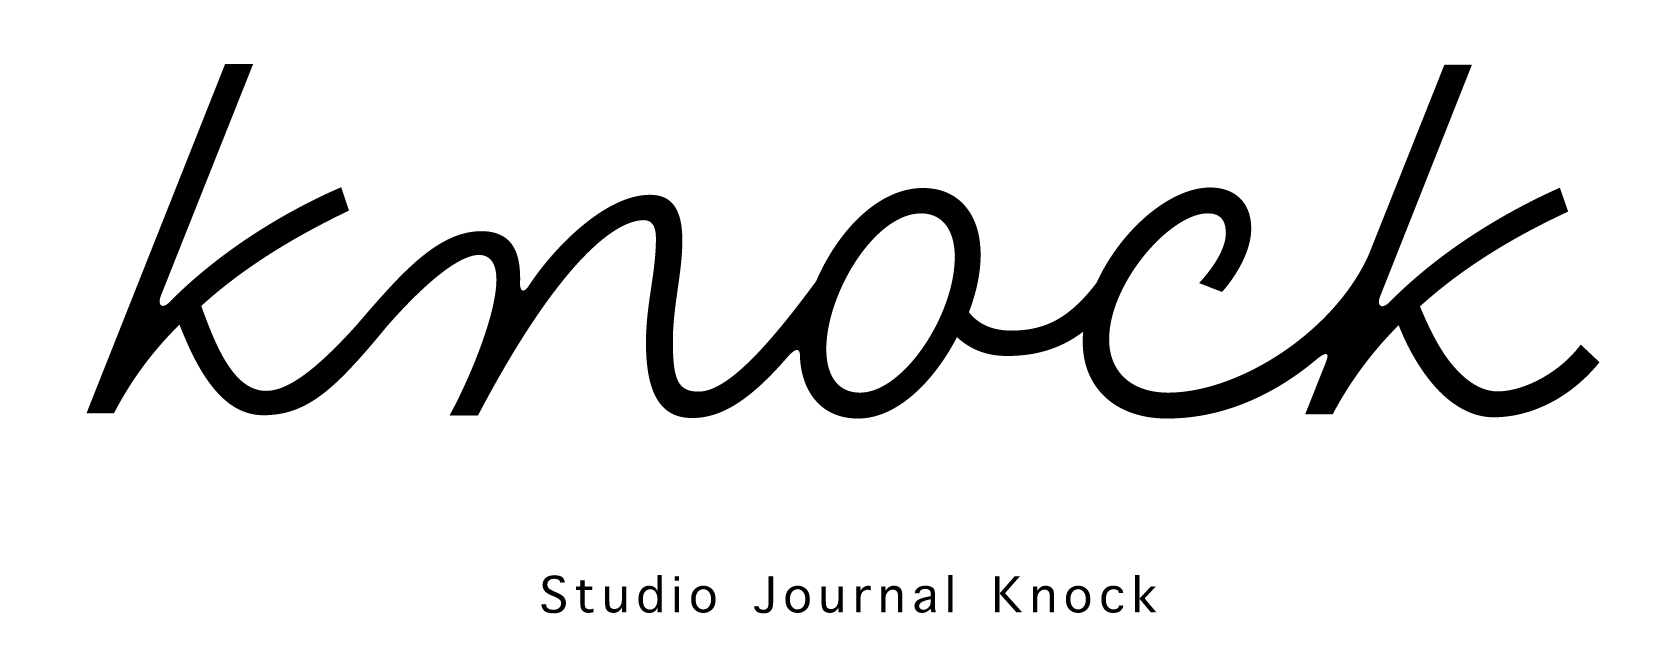 Studio Journal knock